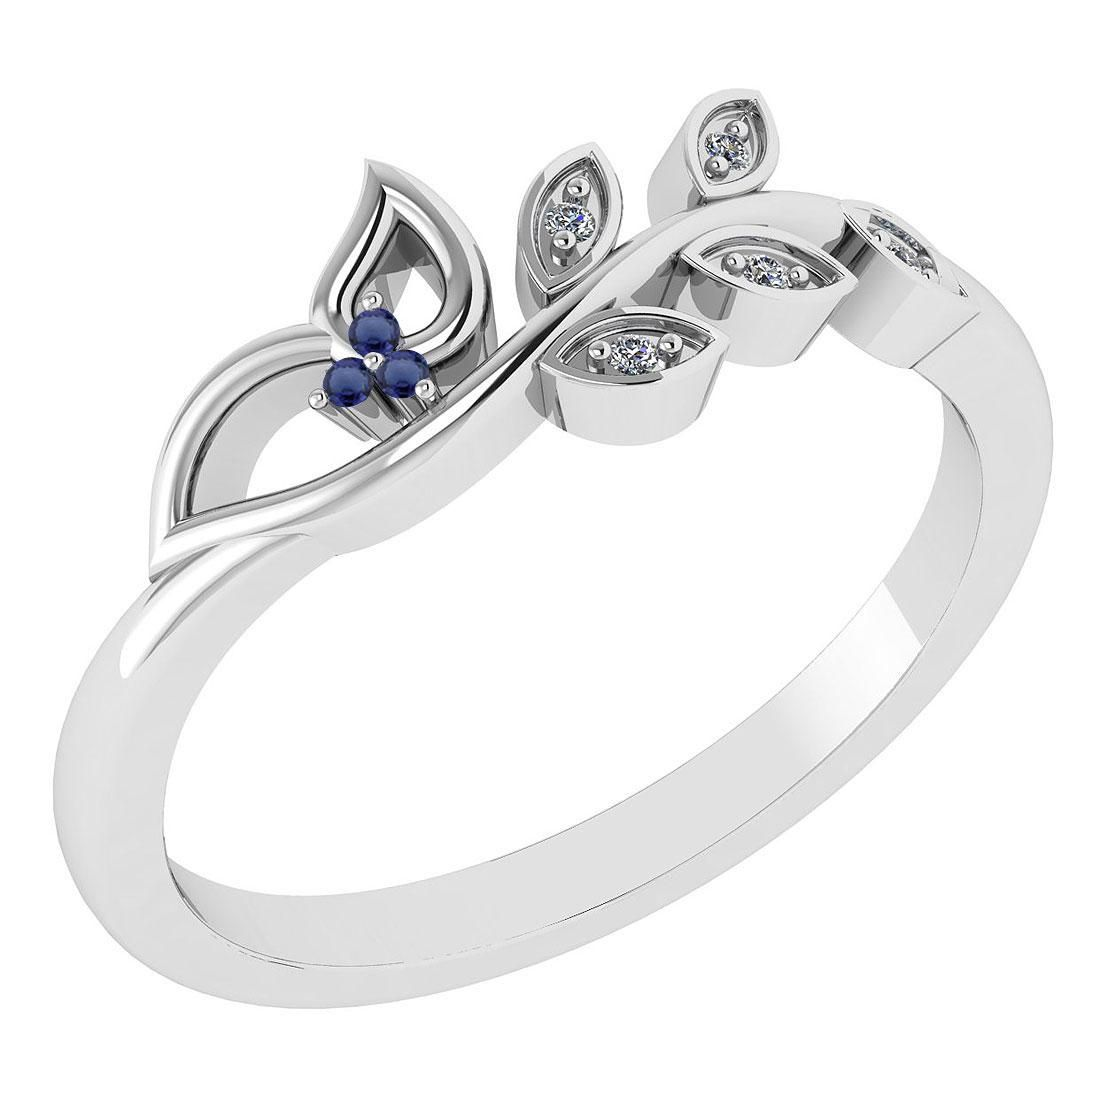 Certified 0.04 Ctw Blue Sapphire And Diamond 14k White